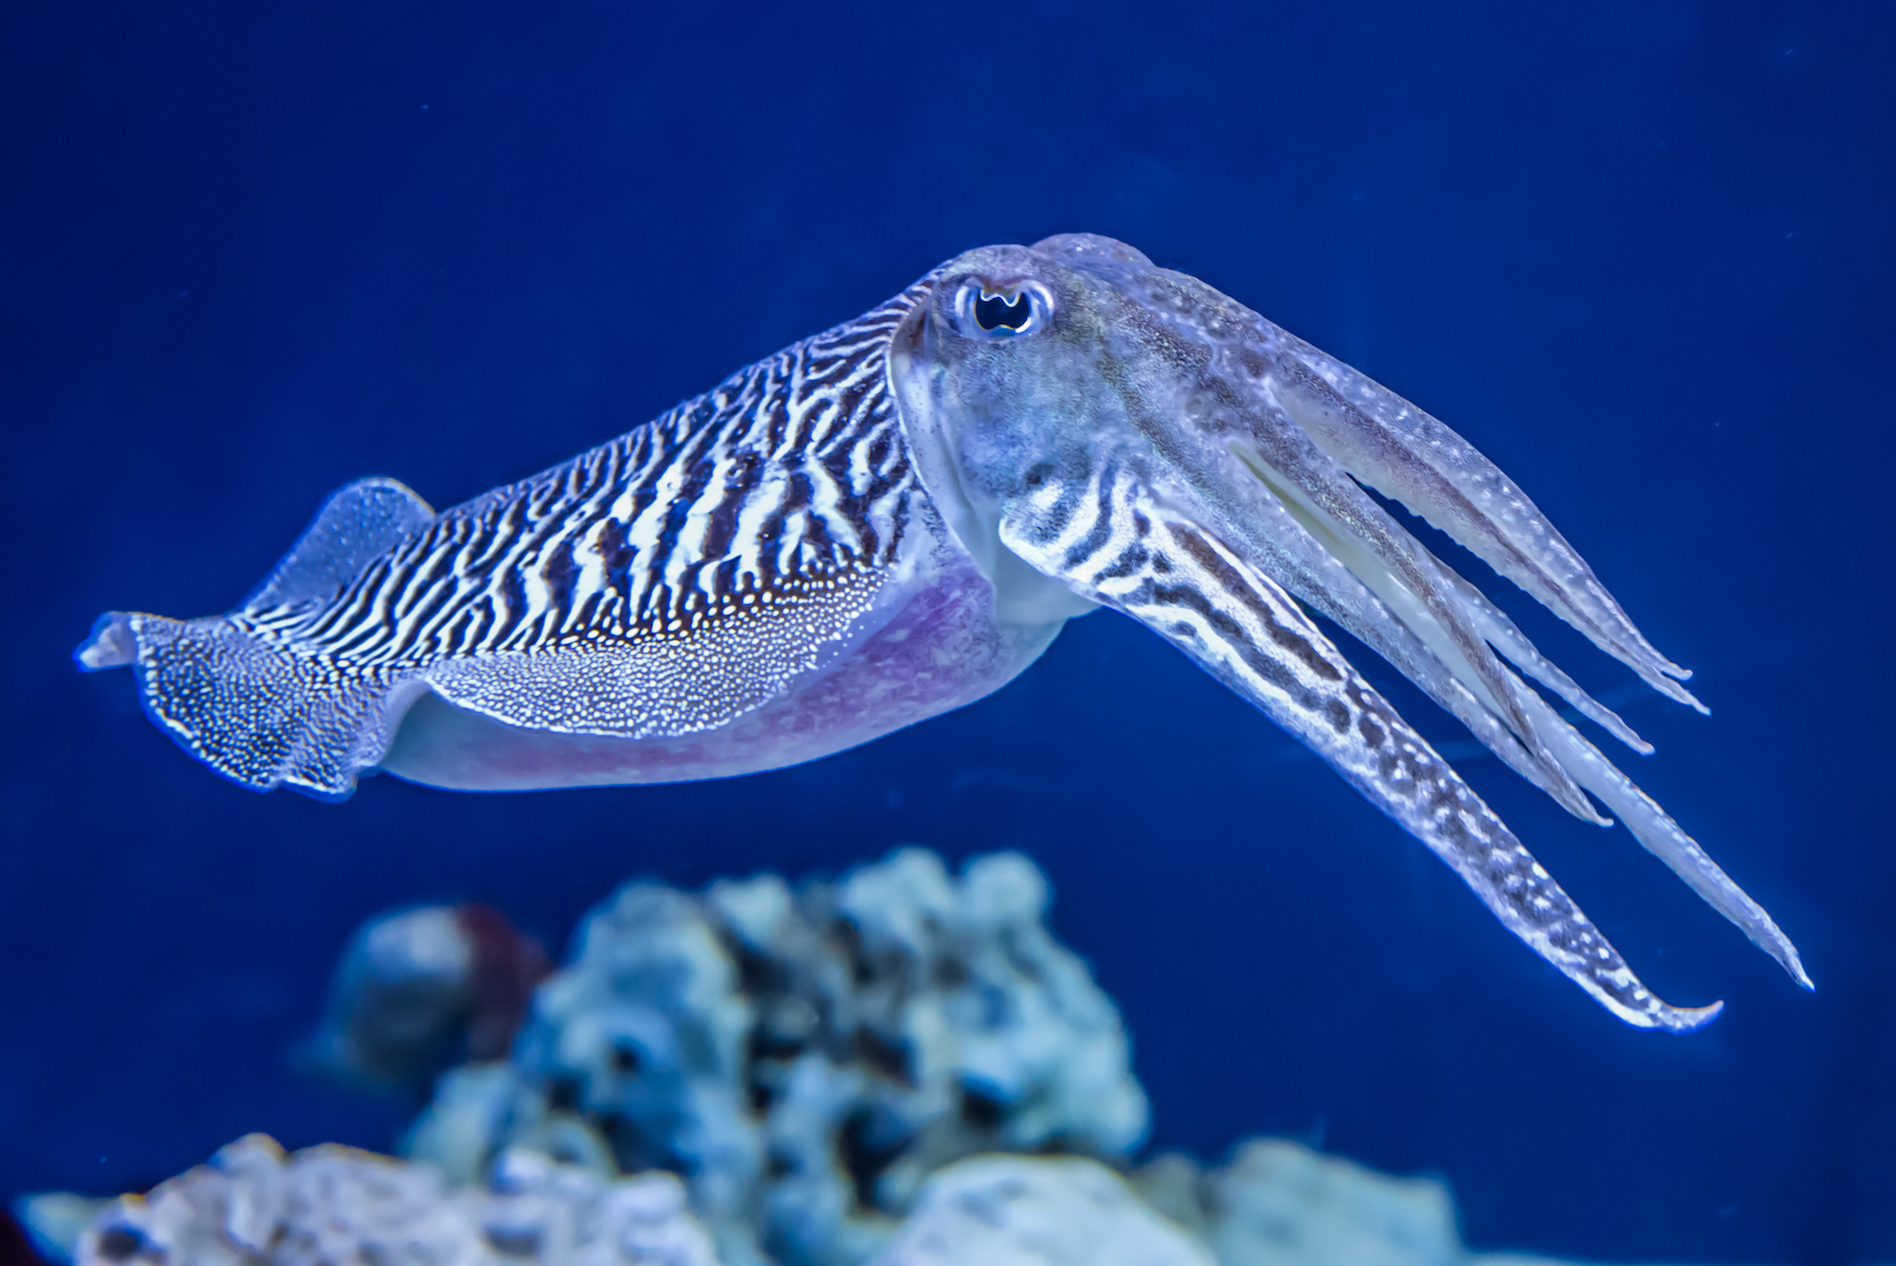 Cuttlefish are able to change texture and shape, even sometimes disguise themselves as different marine wildlife.